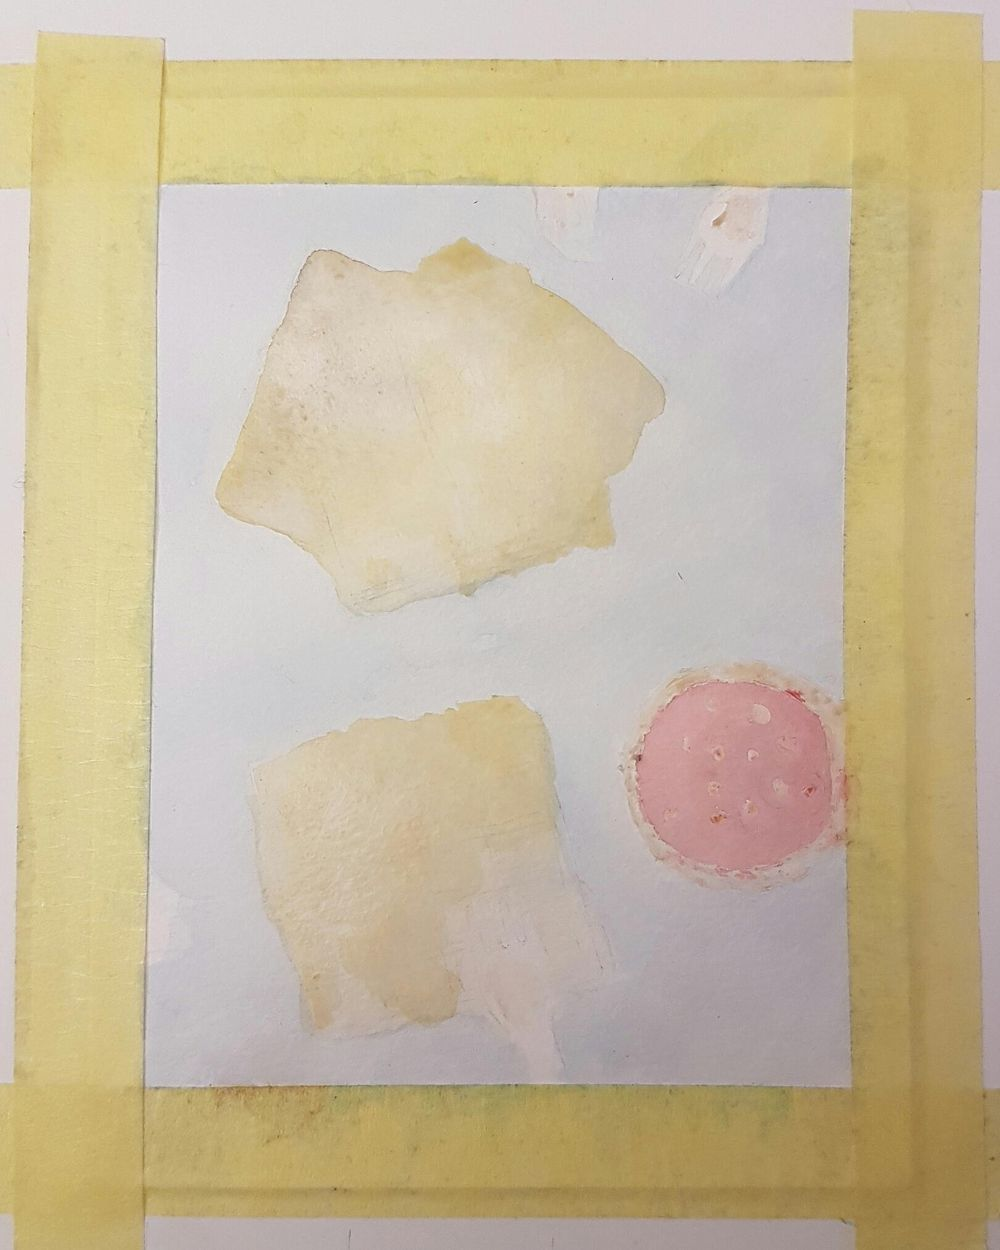 Practice Connecting things in Watercolor - Waffles - image 2 - student project